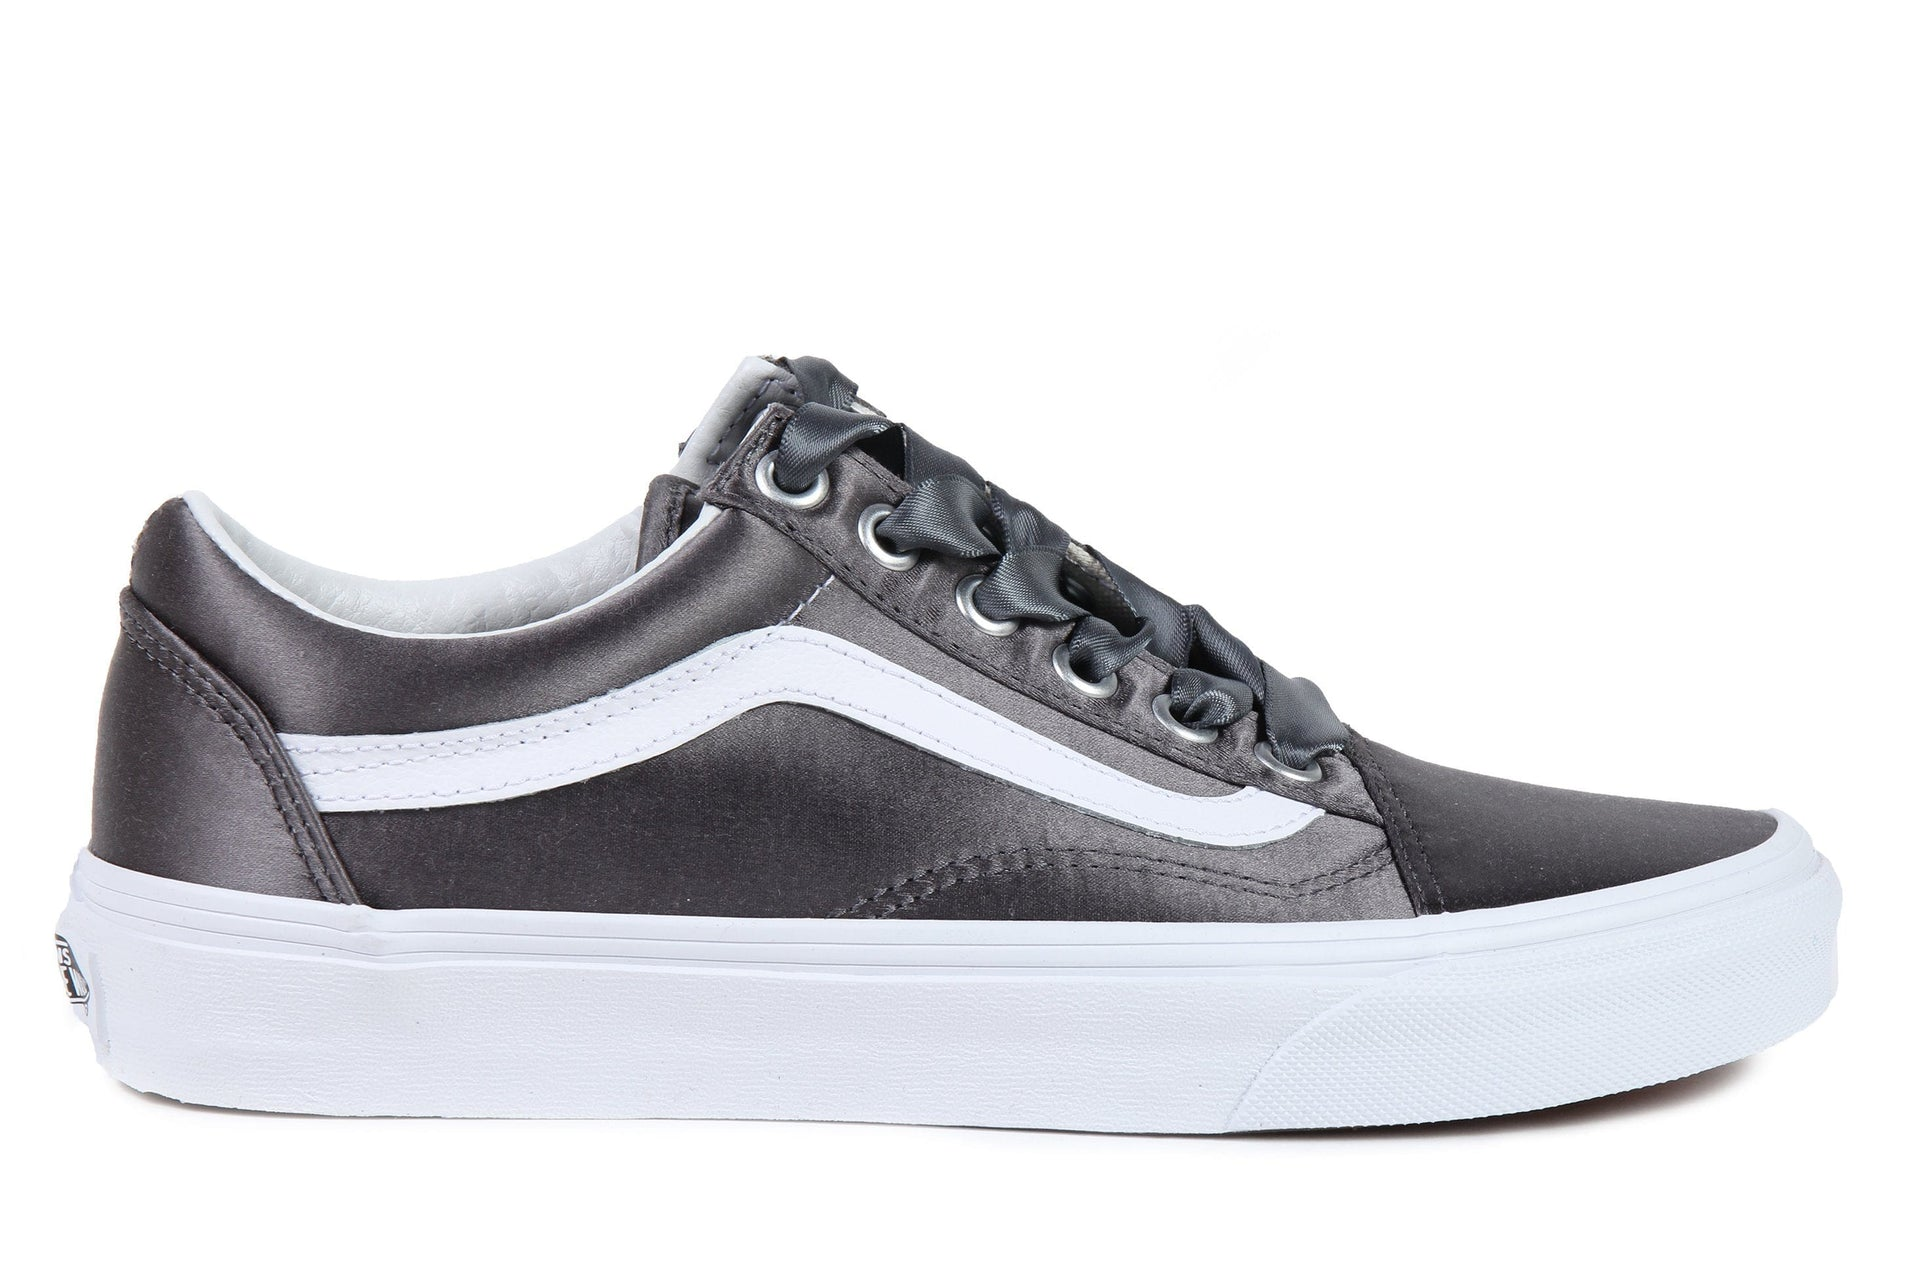 OLD SKOOL (SATIN LUX) - VN0A38G1R1I WOMENS FOOTWEAR VANS (SATIN LUX) GRAY/ TRUE WHITE 6 VN0A38G1R1I